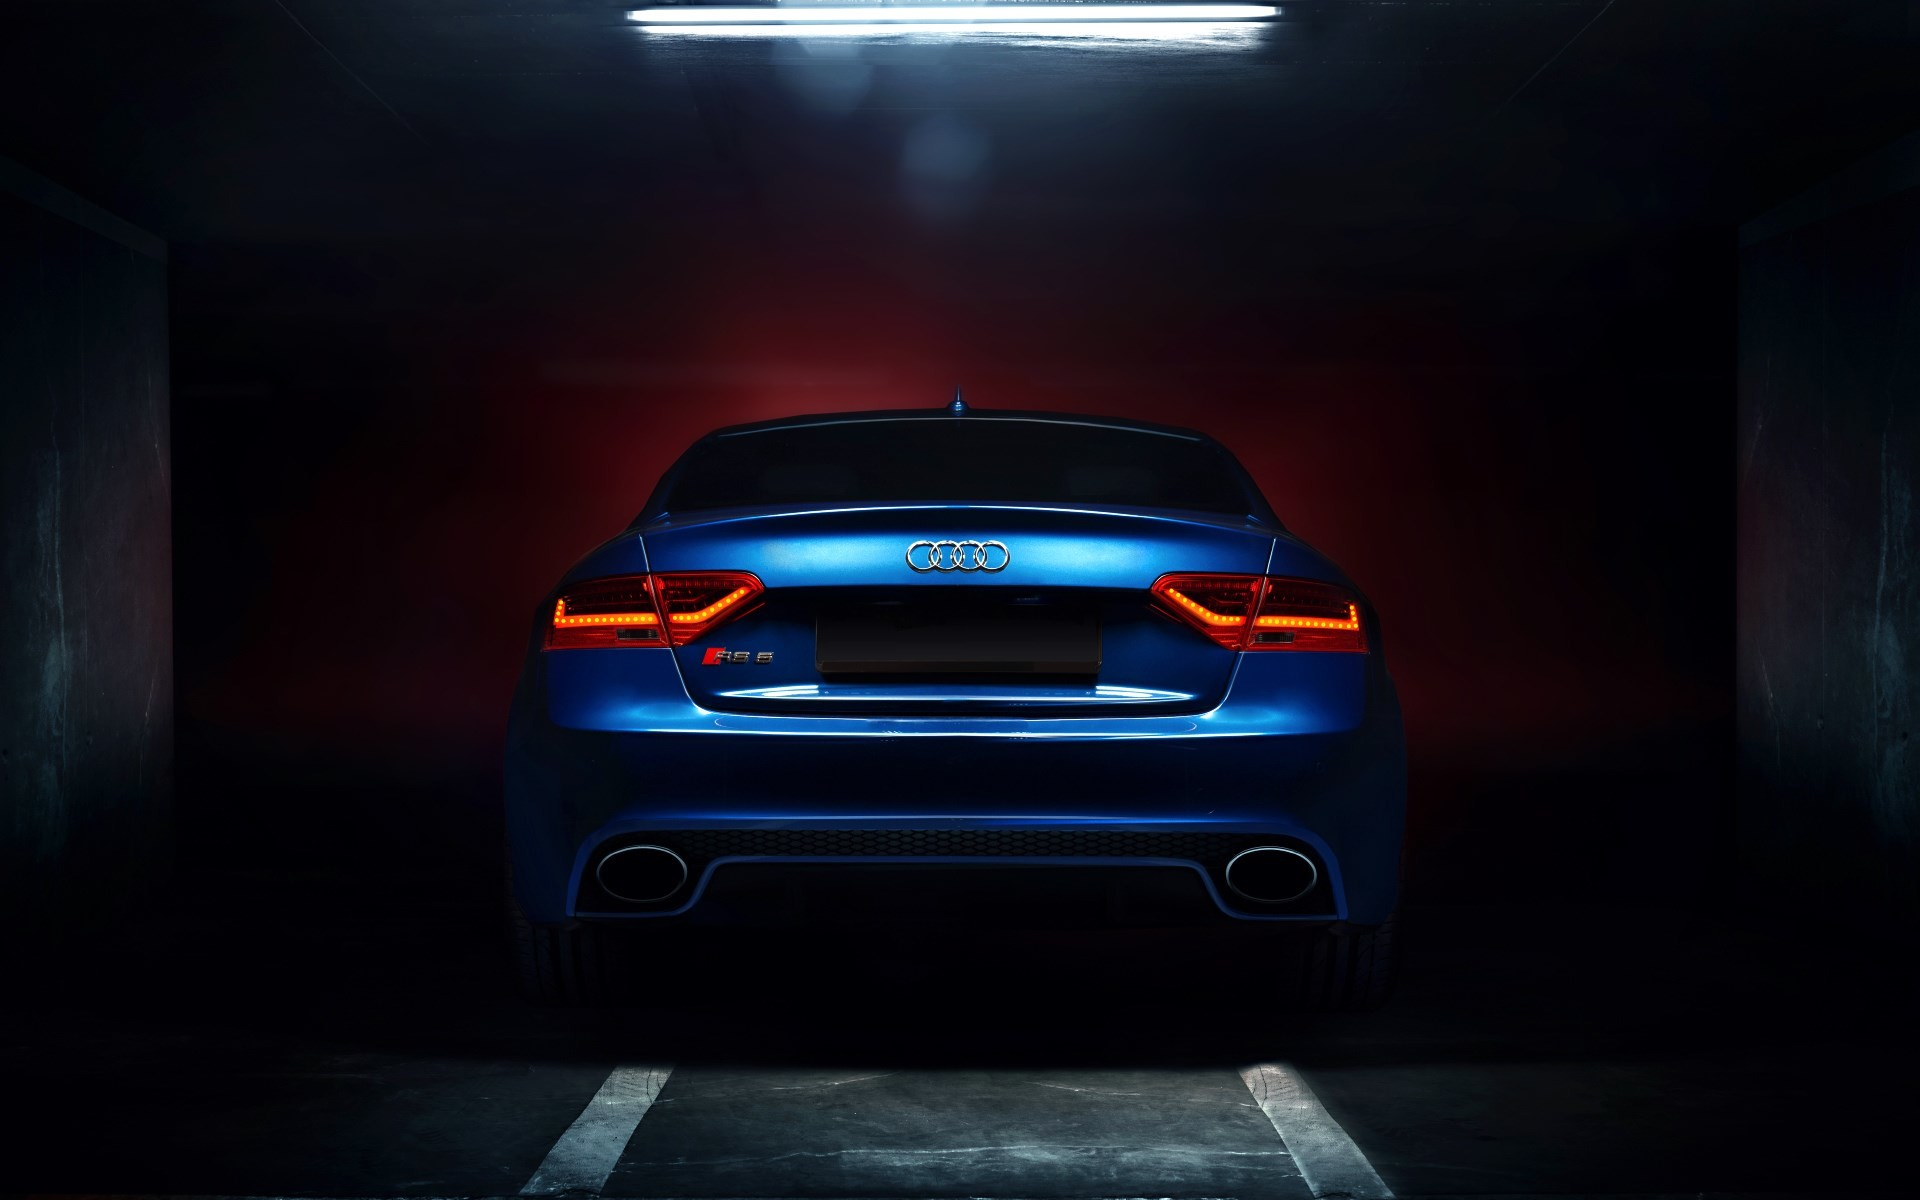 1920x1200 Audi RS5 Coupe Tuning Blue Car Backlights Glow